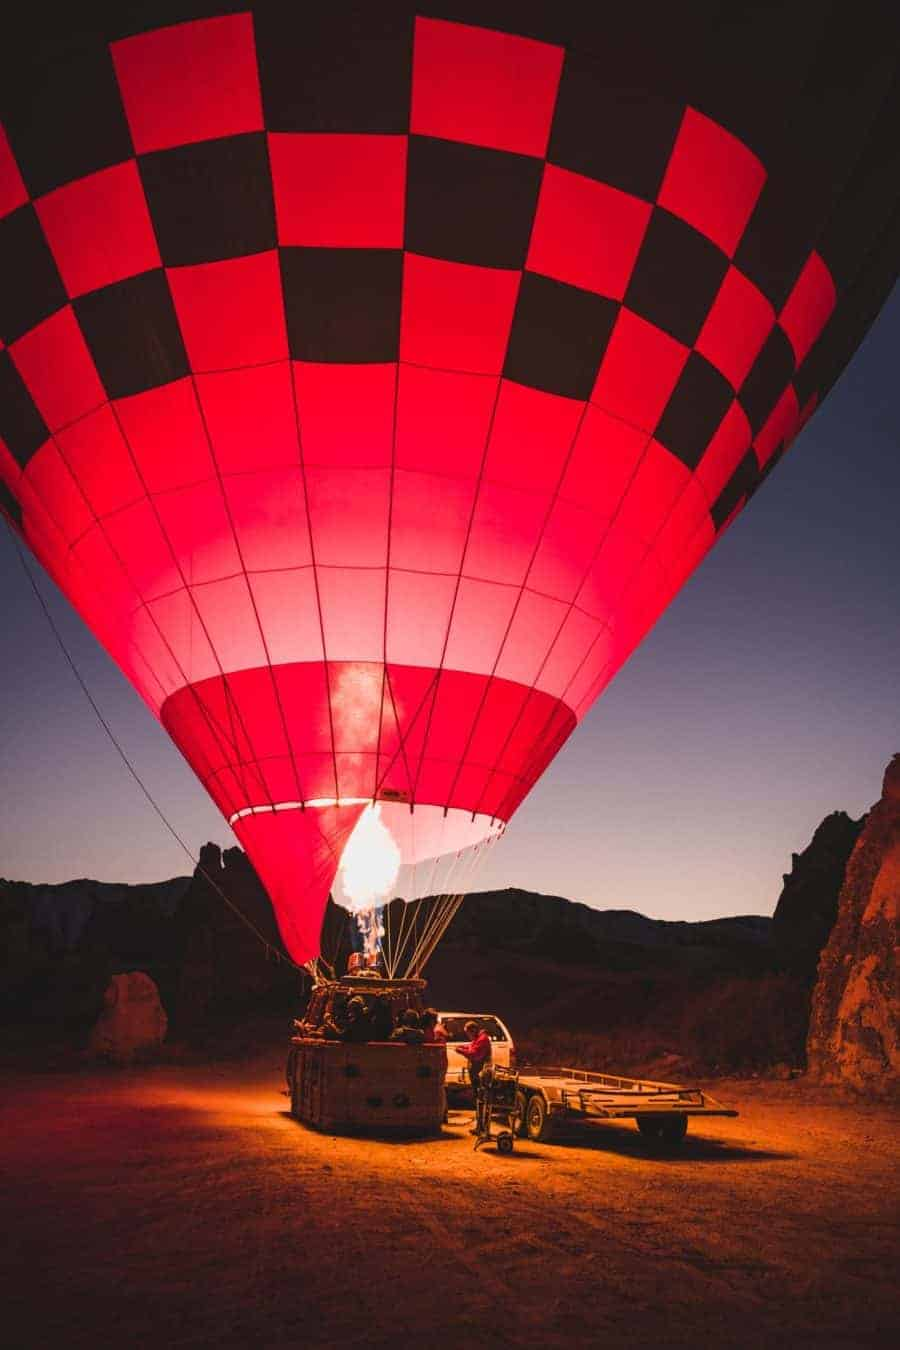 having a balloon ride in Morocco